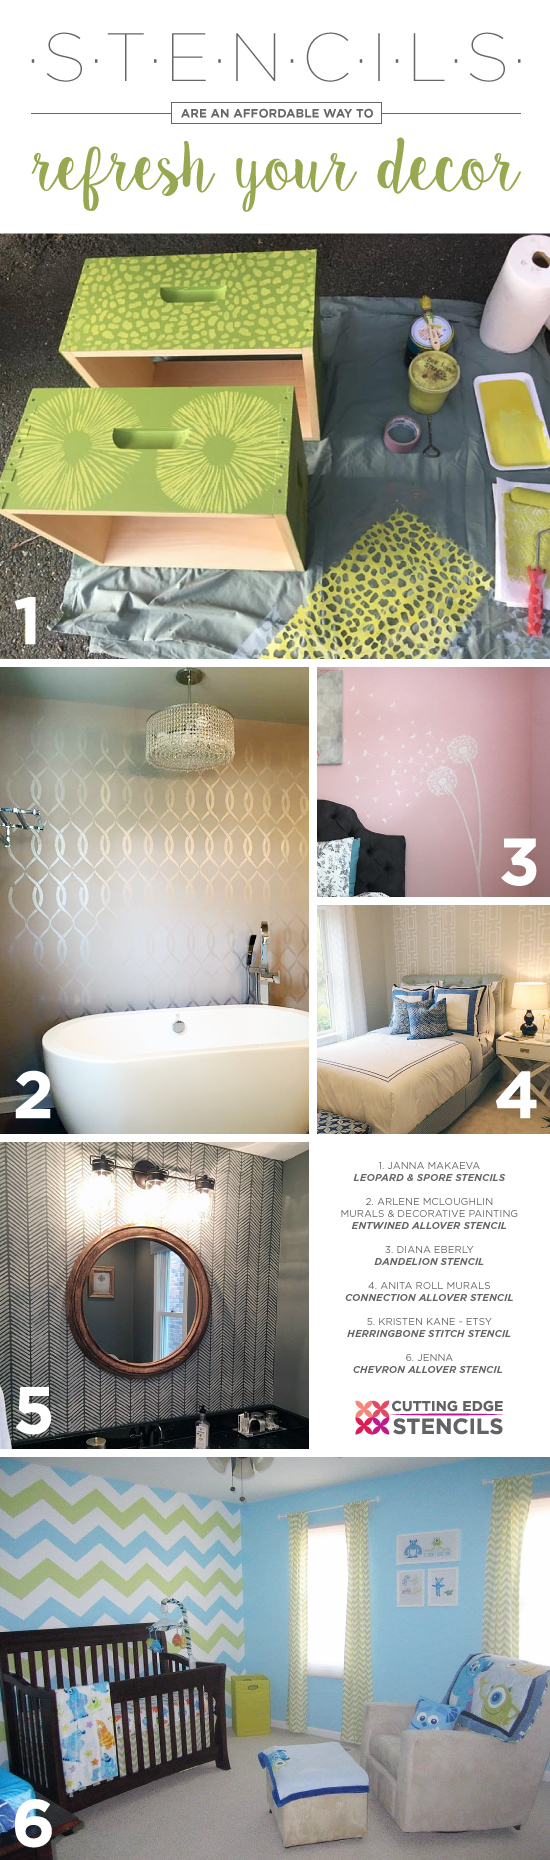 stencils are an affordable way to refresh your decor stencil stories cutting edge stencils shares diy home decorating ideas using wall and craft stencil patterns http